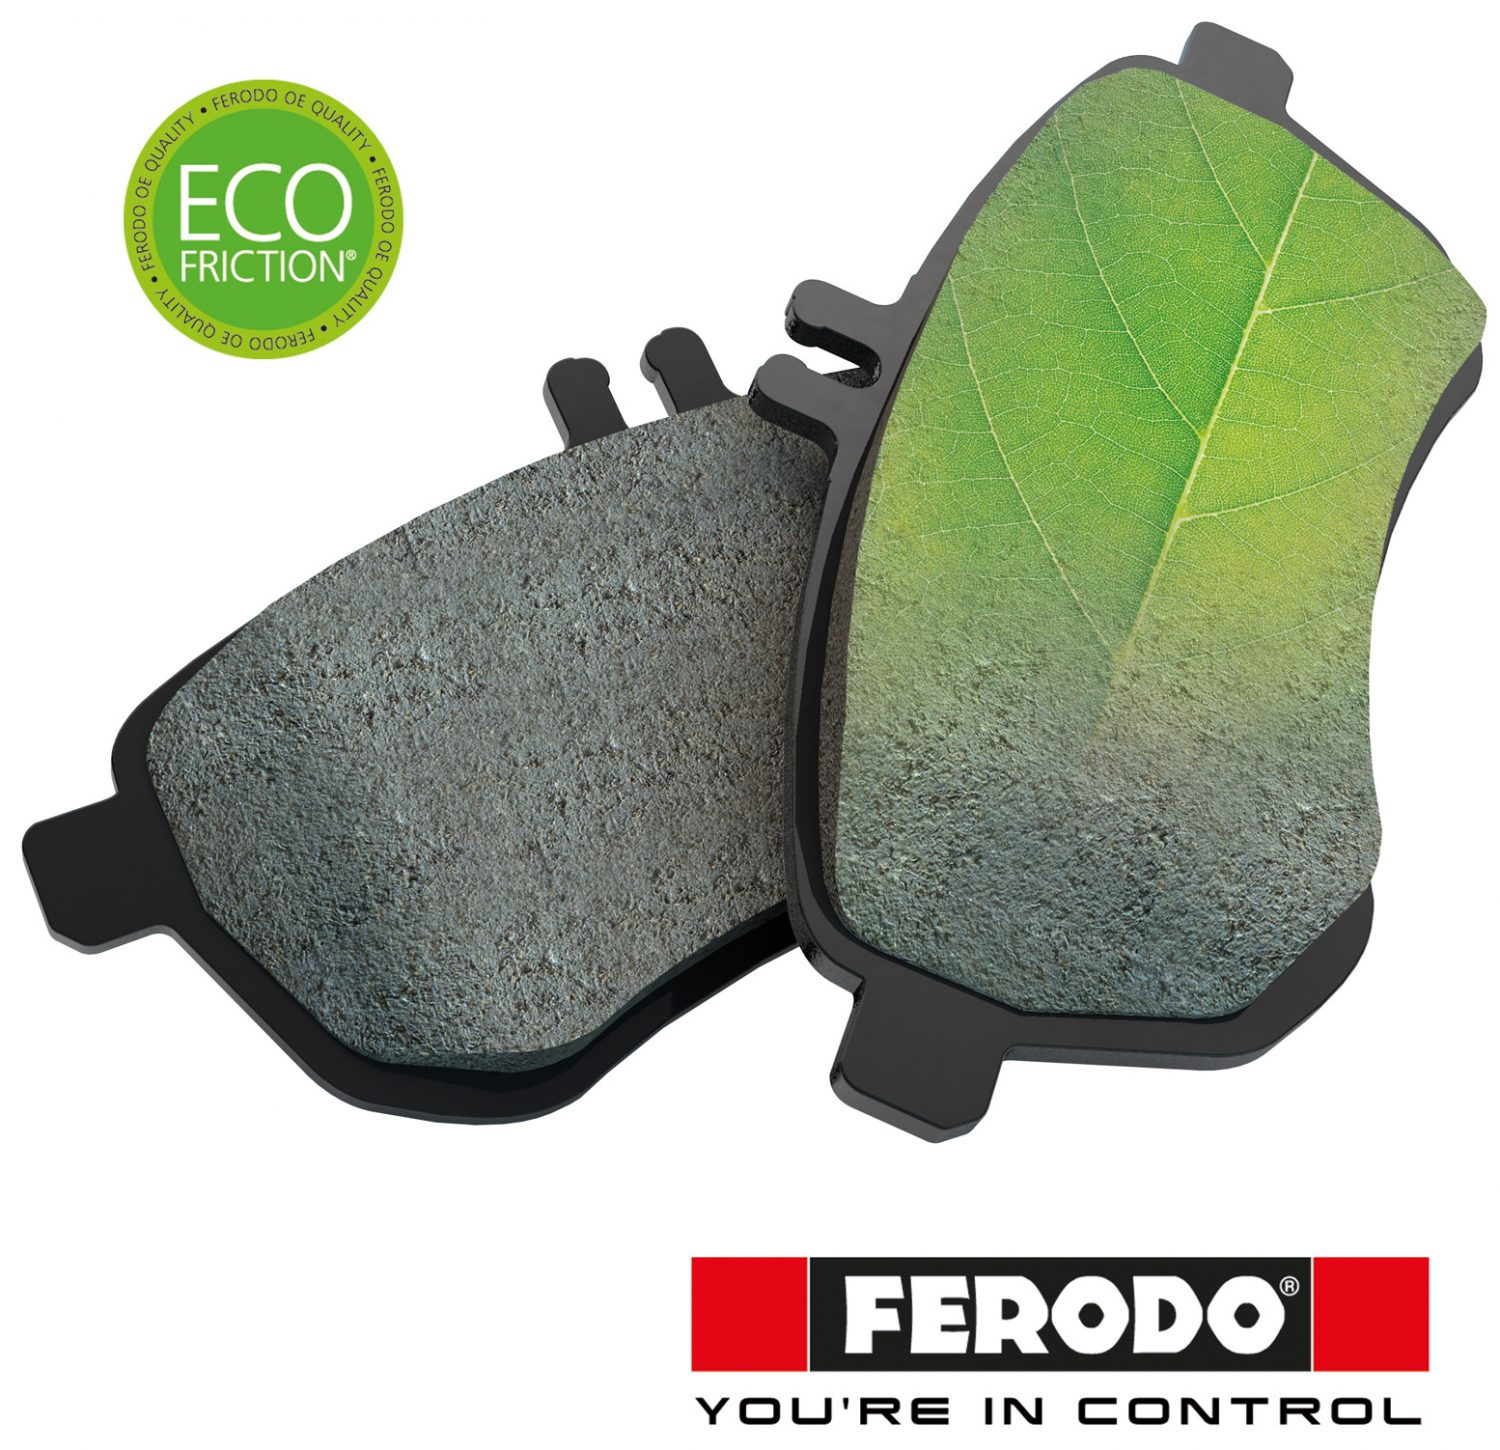 Ferodo Eco-Friction